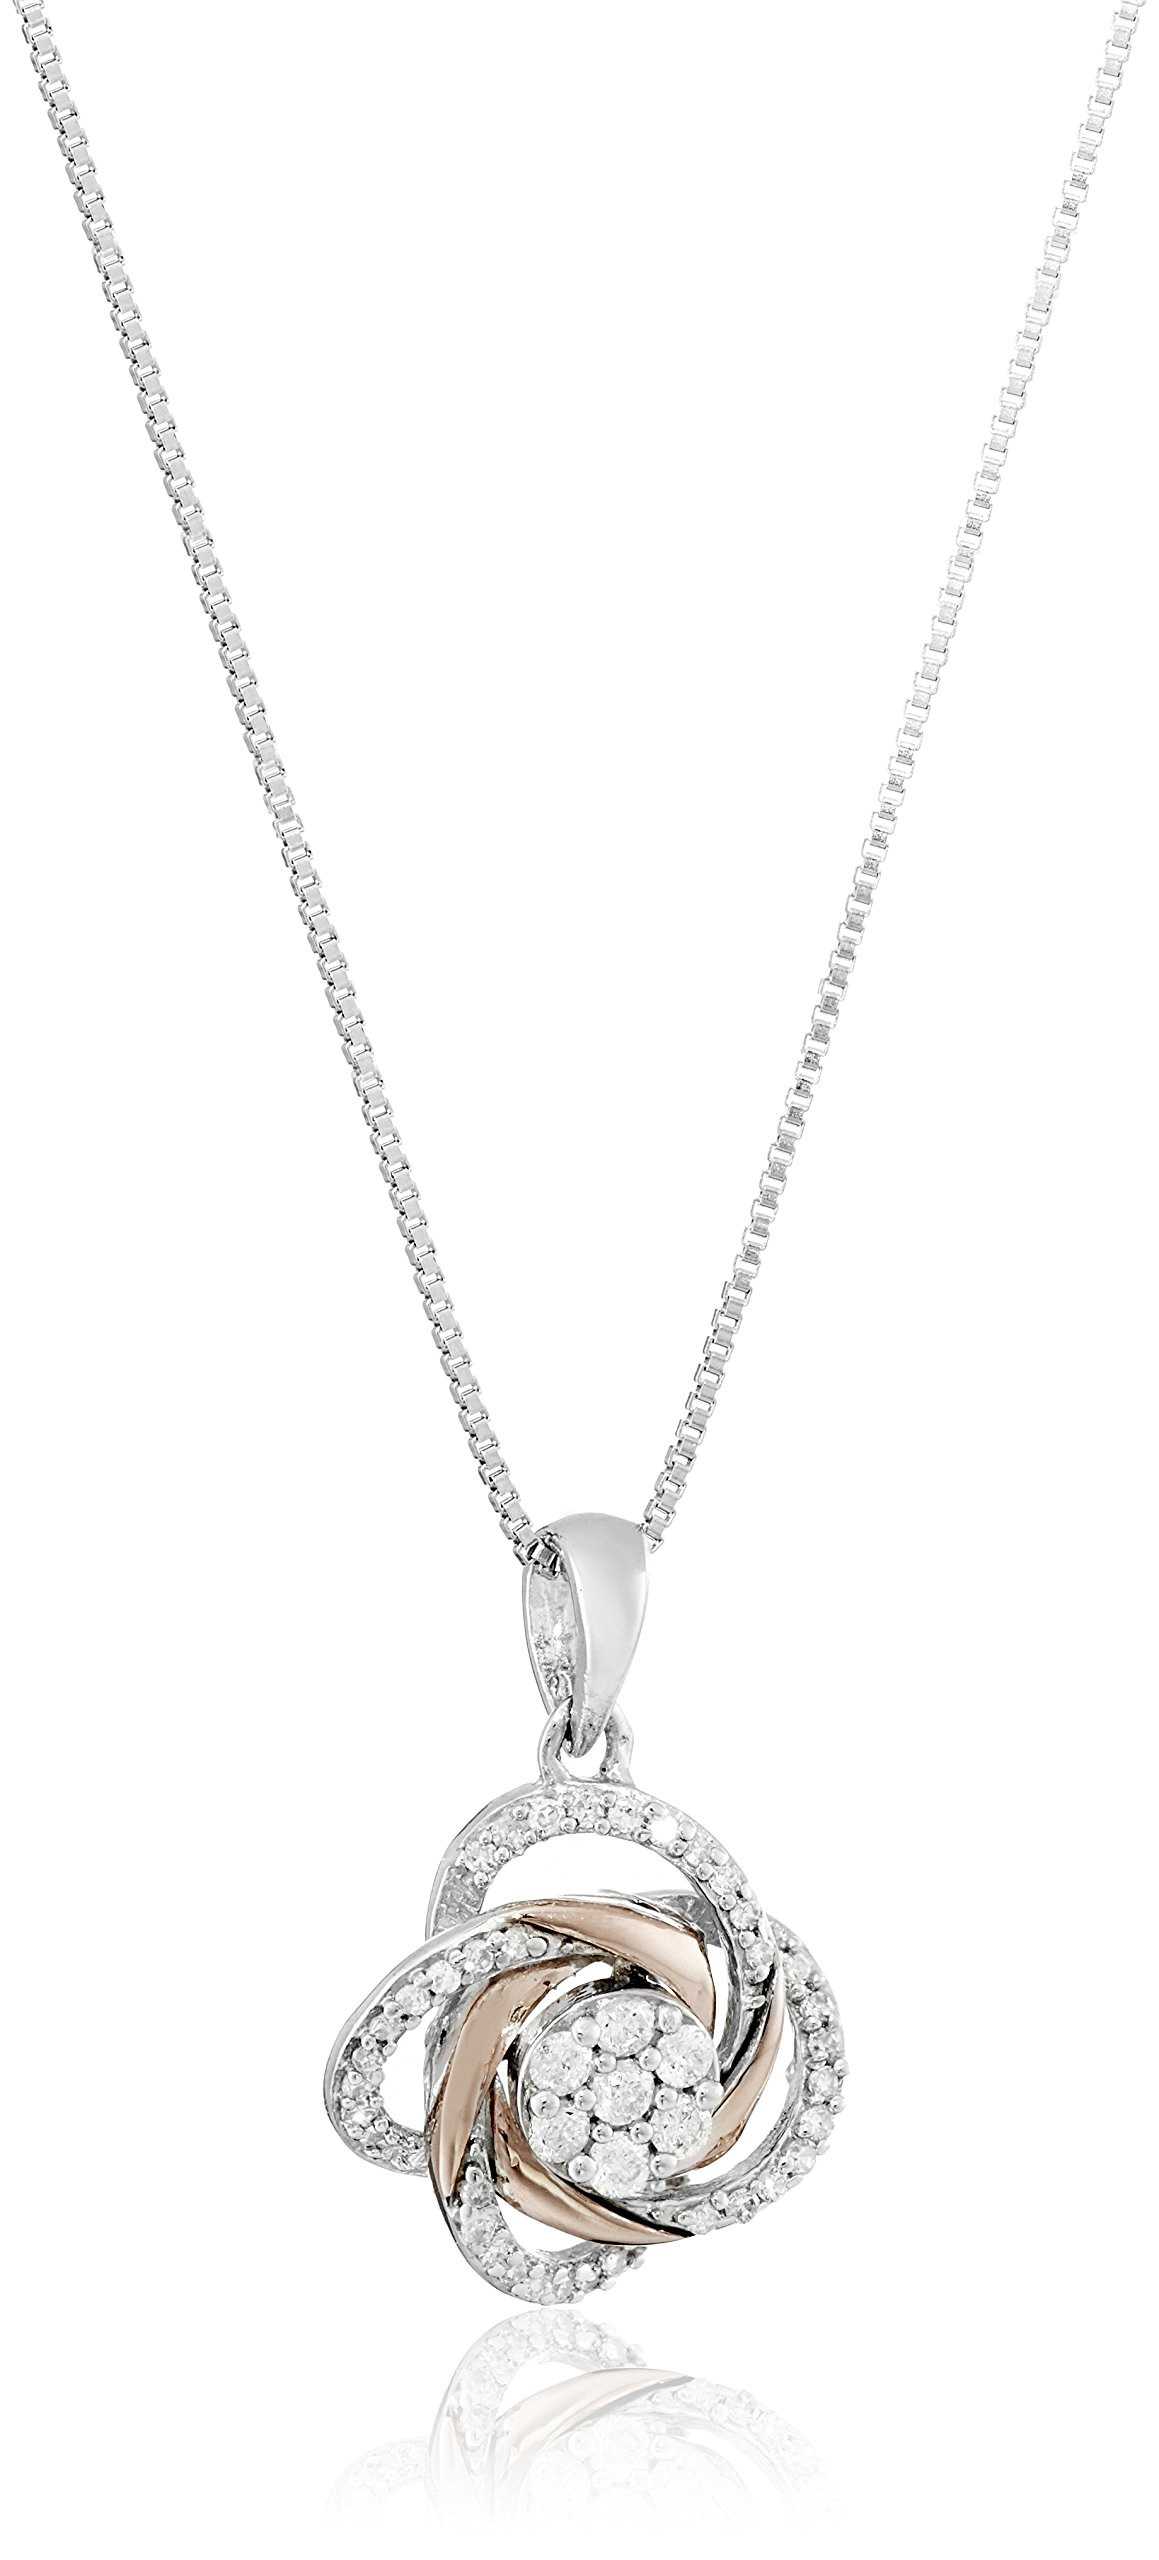 Sterling Silver Two-Tone Diamond Love Knot Pendant Necklace (1/4 cttw, J-K Color, I2-I3 Clarity)